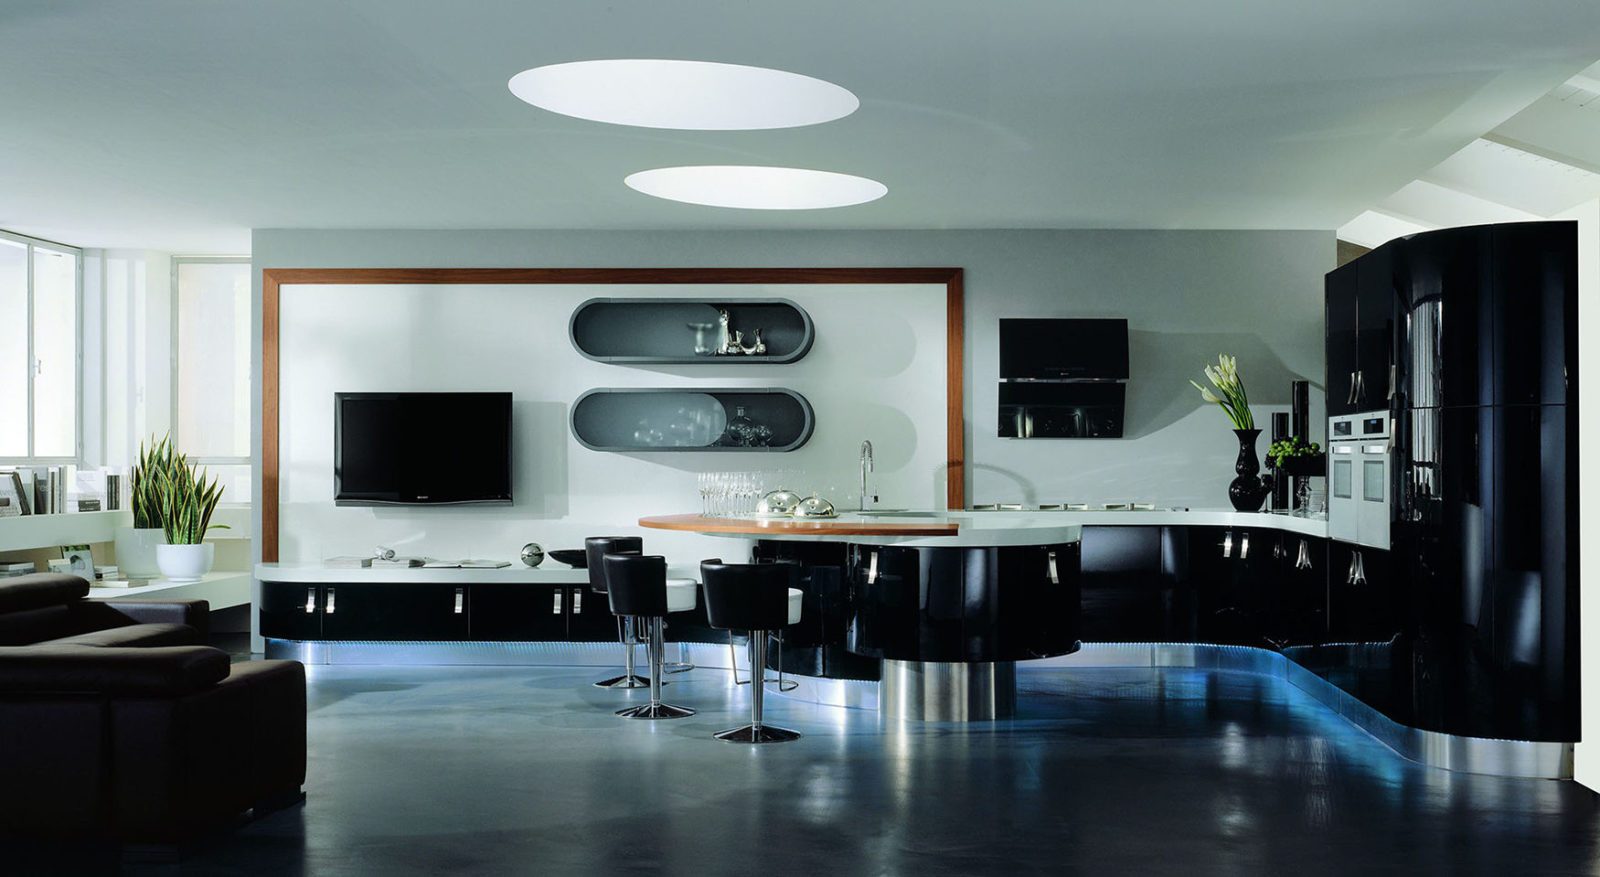 Curved black kitchen